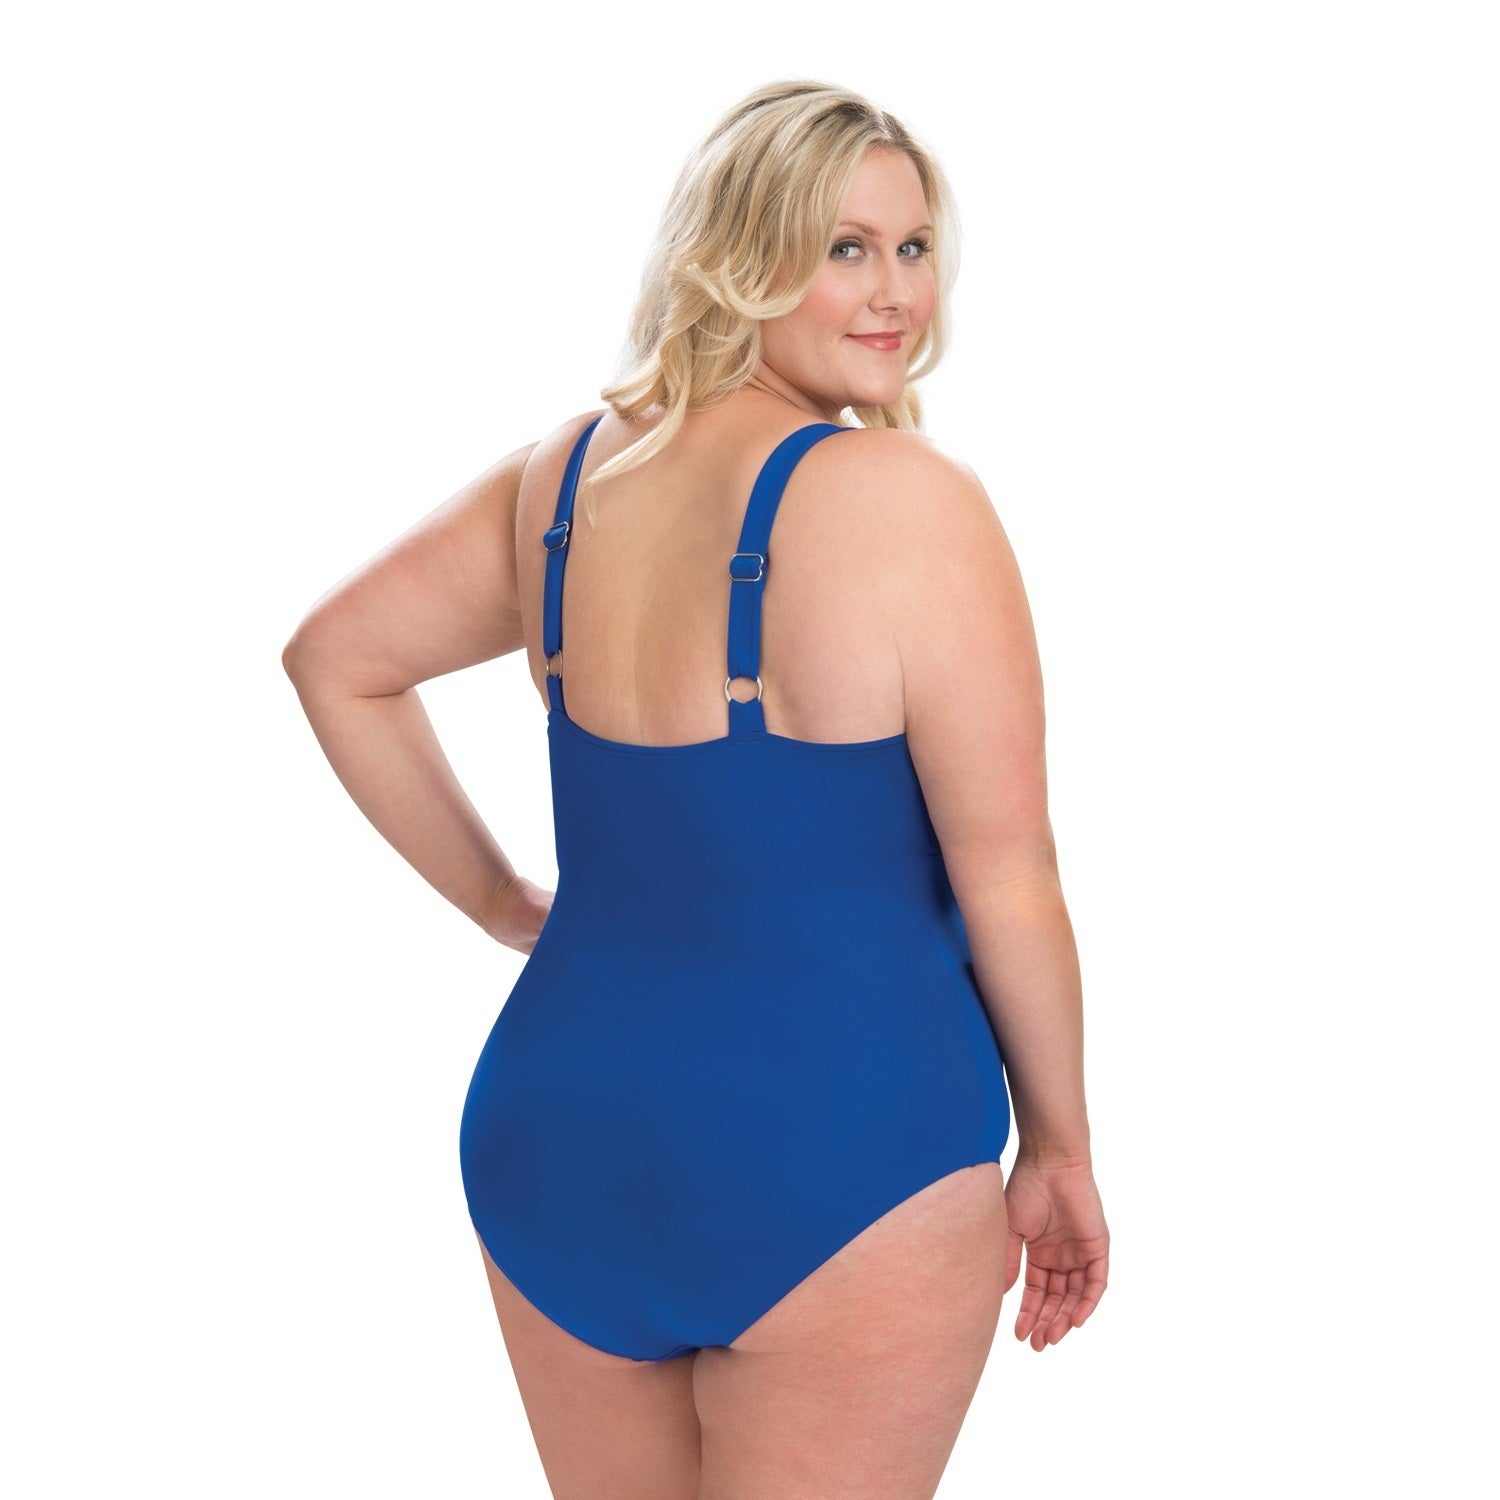 795e8cdd26d Shop Dolfin Aquashape Plus Size Drape Front One Piece Swimsuit with Tummy  Control - Free Shipping Today - Overstock - 16077764